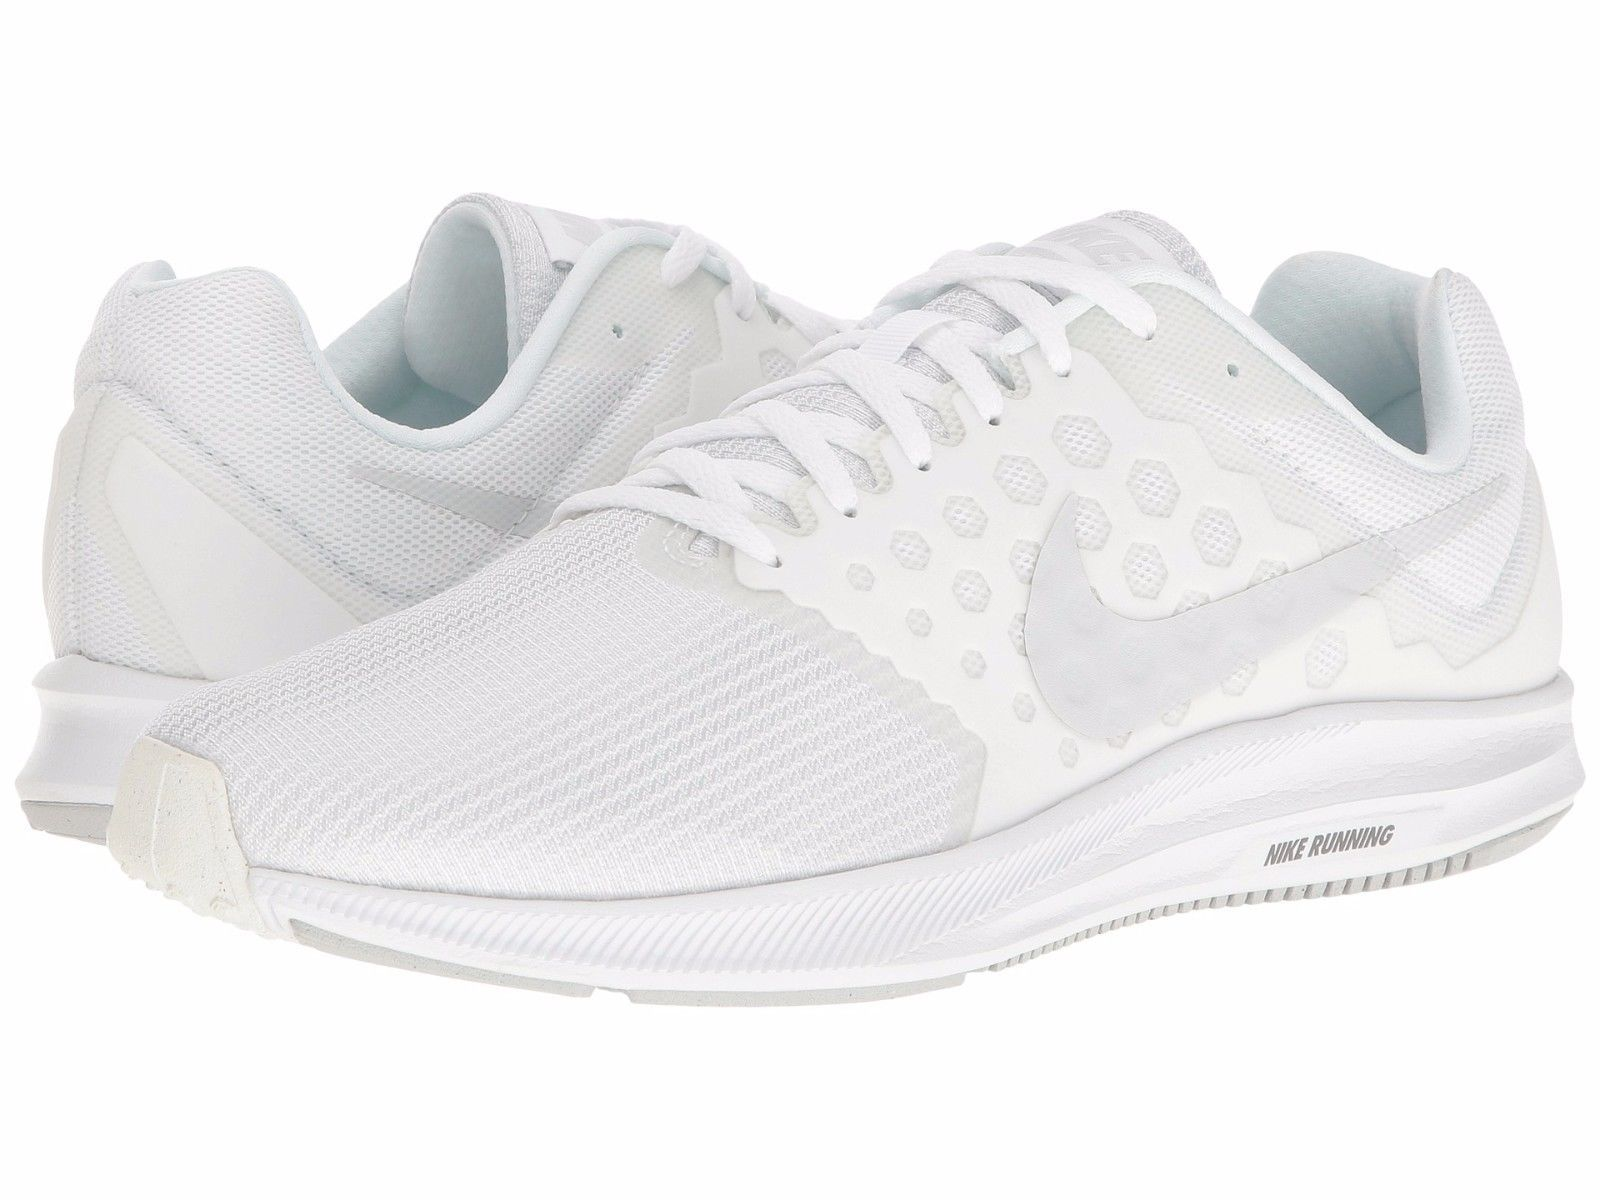 e1d26f4b6bf8 Nike DOWNSHIFTER 7 Mens White 100 Lace Up Athletic Mesh Training Running  Shoes